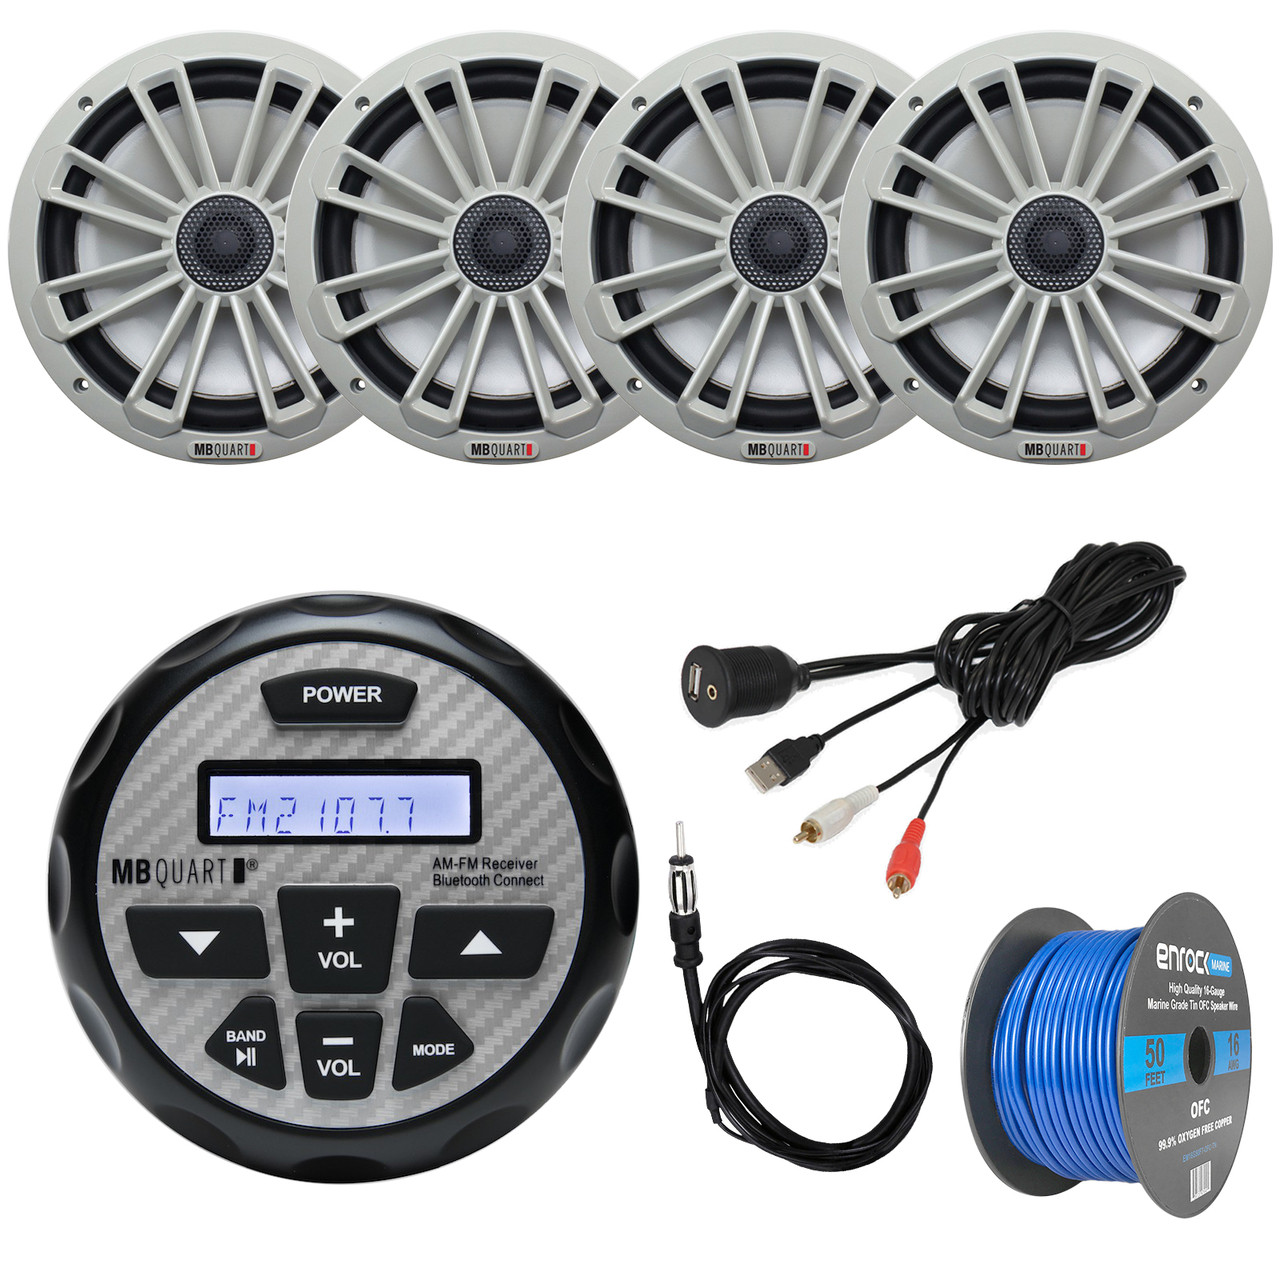 medium resolution of bay boat audio package mb quart gmr 2 5 waterproof am fm bluetooth gauge source unit receiver 2x 8 2 way coaxial marine speakers pair silver